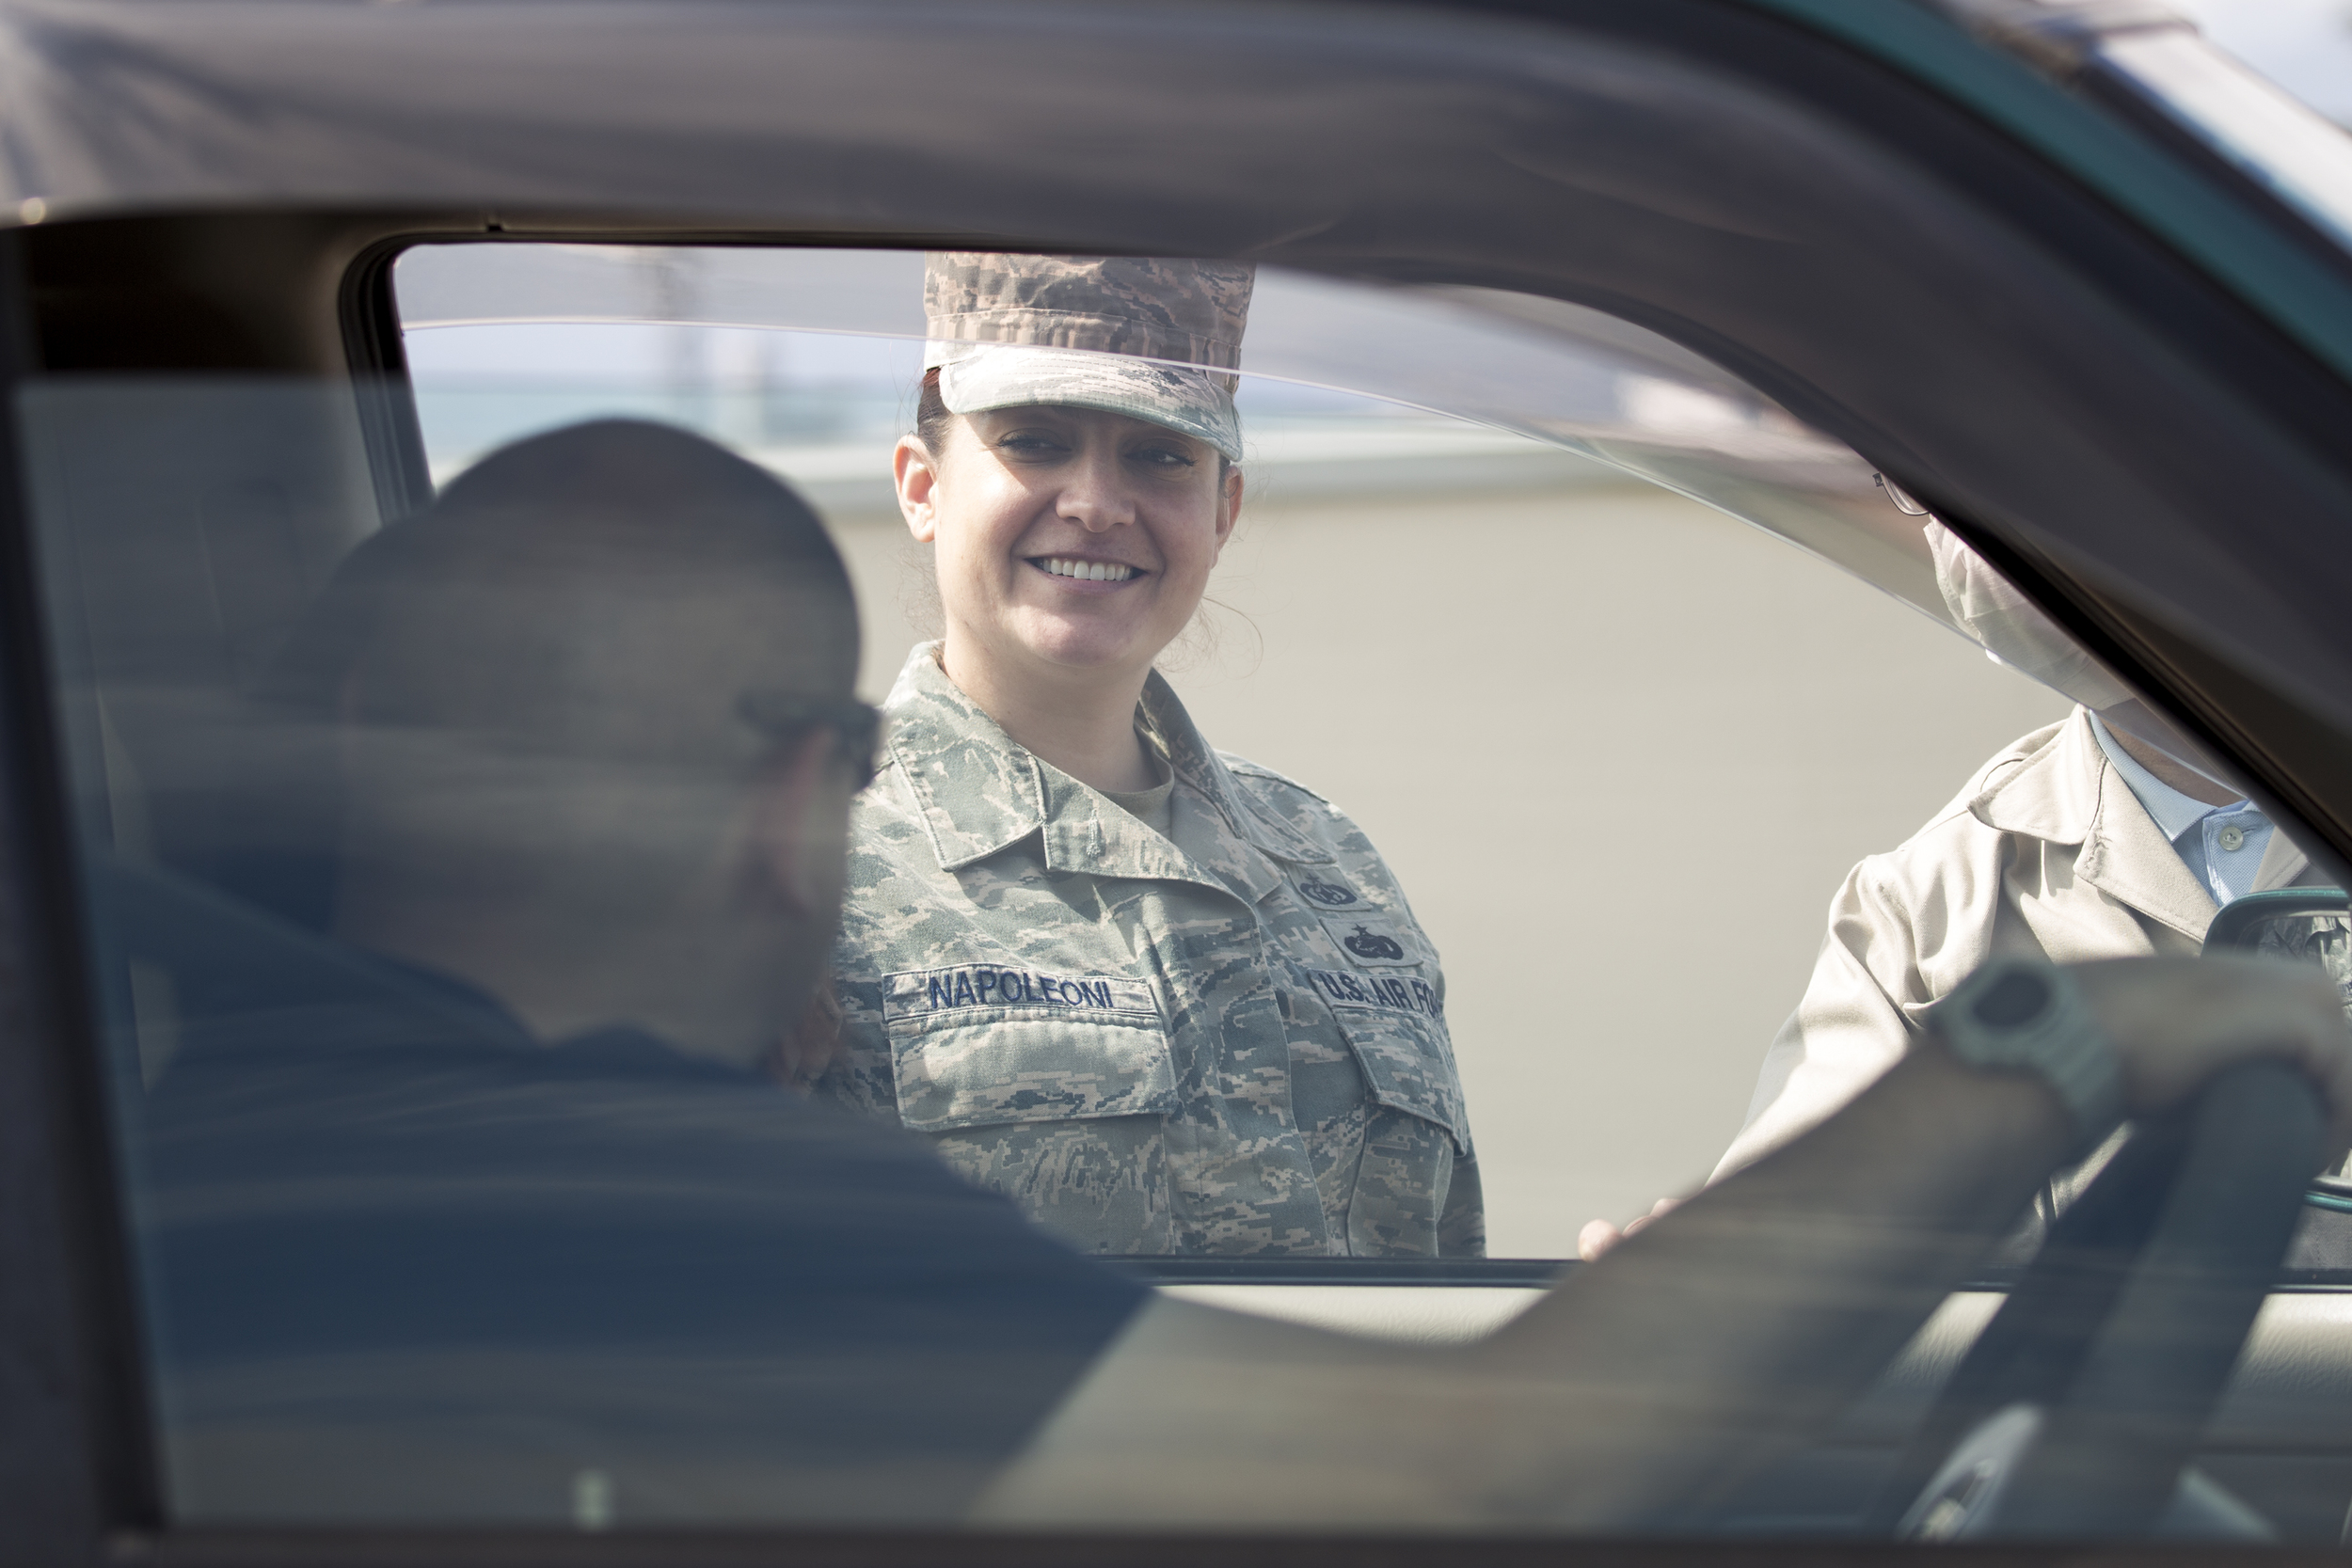 Tech. Sgt. Laury Napoleoni, 374th Airlift Wing Safety ground safety manager, talks to a driver during a safety week promotion at Yokota Community Center, March 4, 2015. The 374 Airlift Wing Safety held safety week from March 2 to 6. The safety week was designed to improve personal and wingman's safety. (U.S. Air Force photo by Osakabe Yasuo/Released)